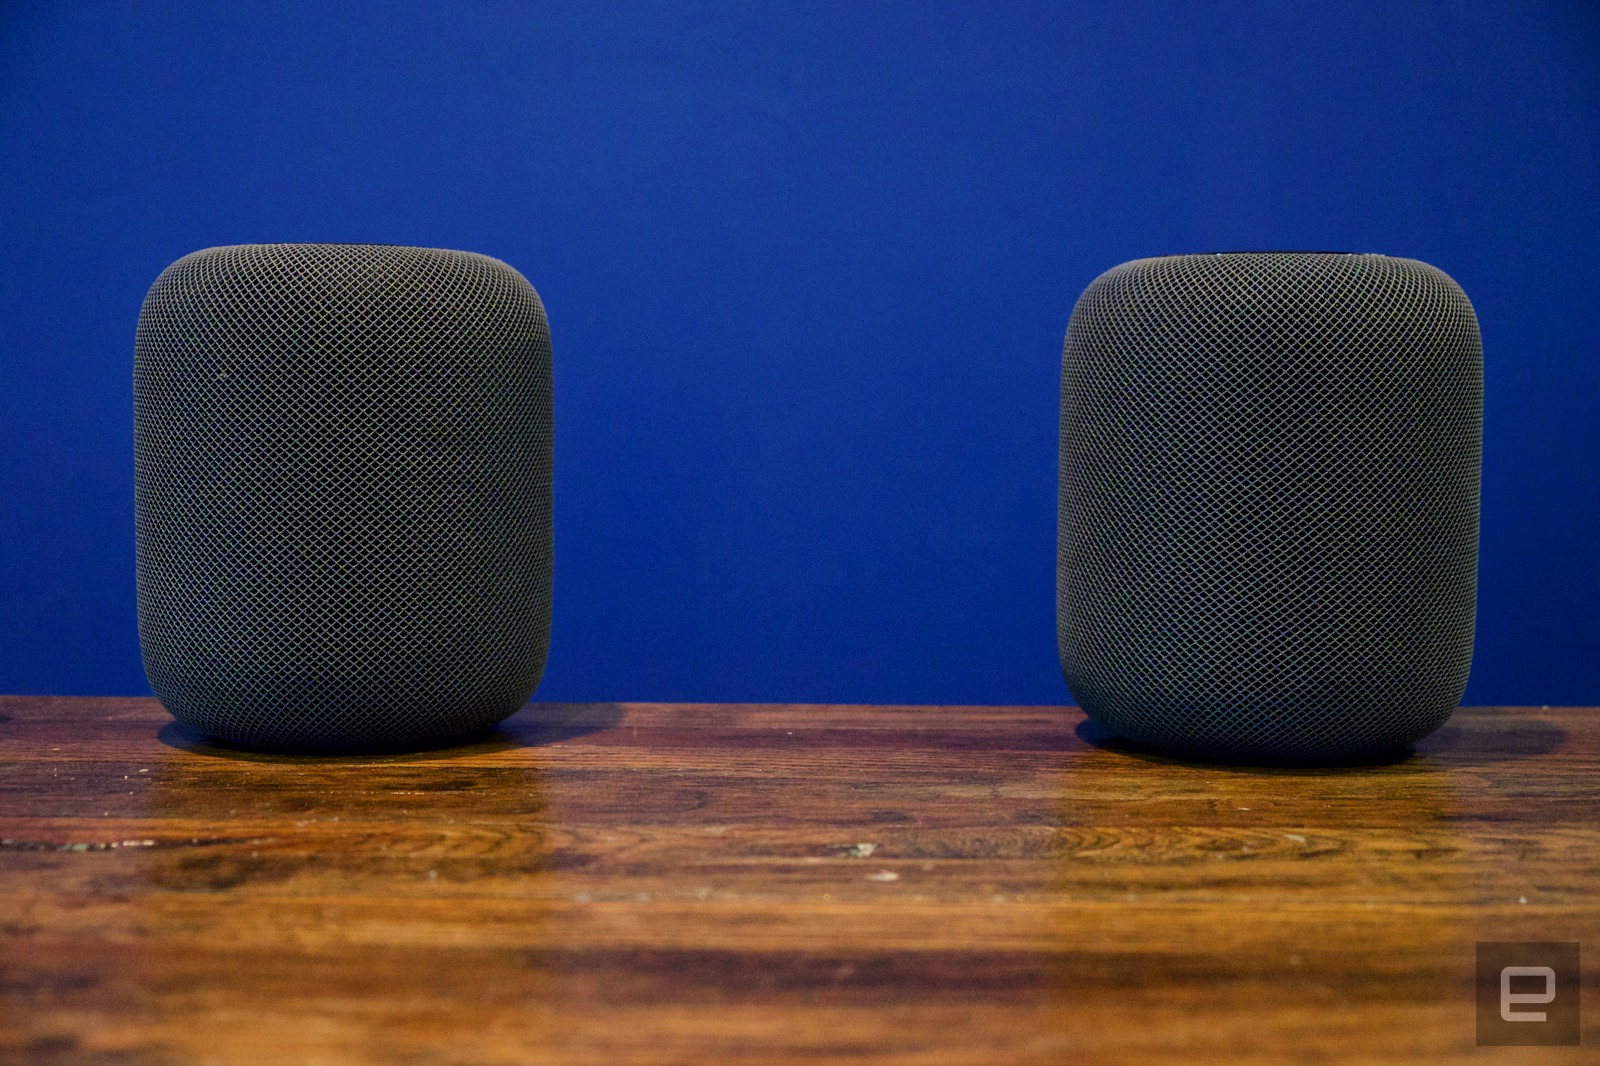 Apple's HomePod in stereo: When two become one